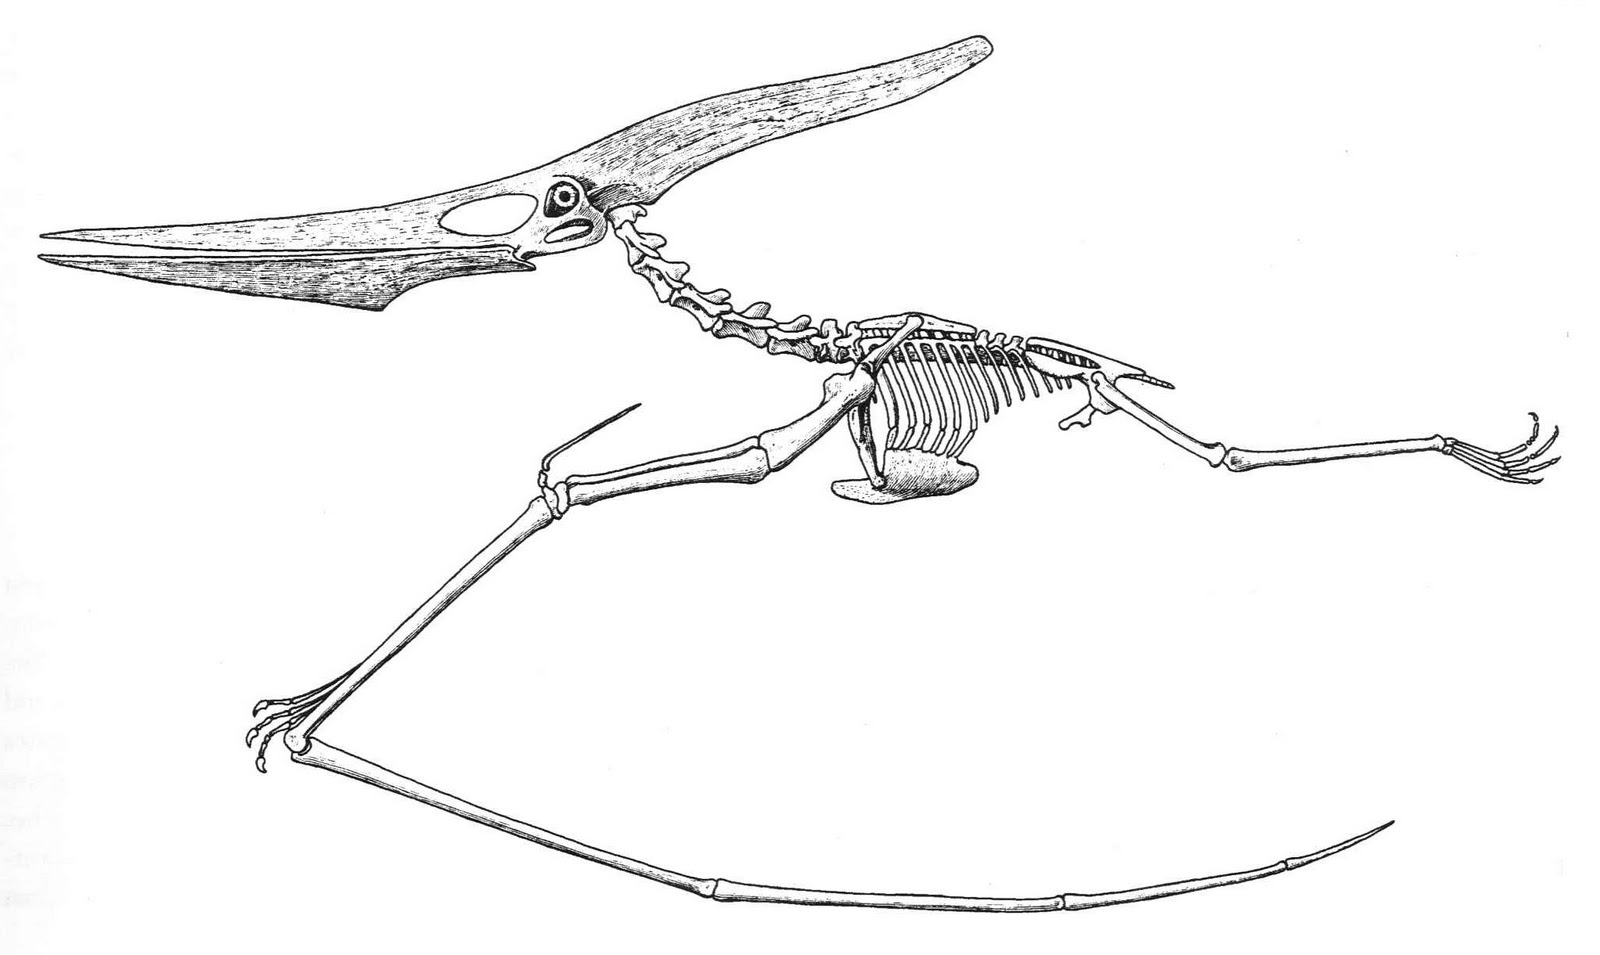 <I> Fig. 3a. Pterosaur longiceps</I> reconstruction